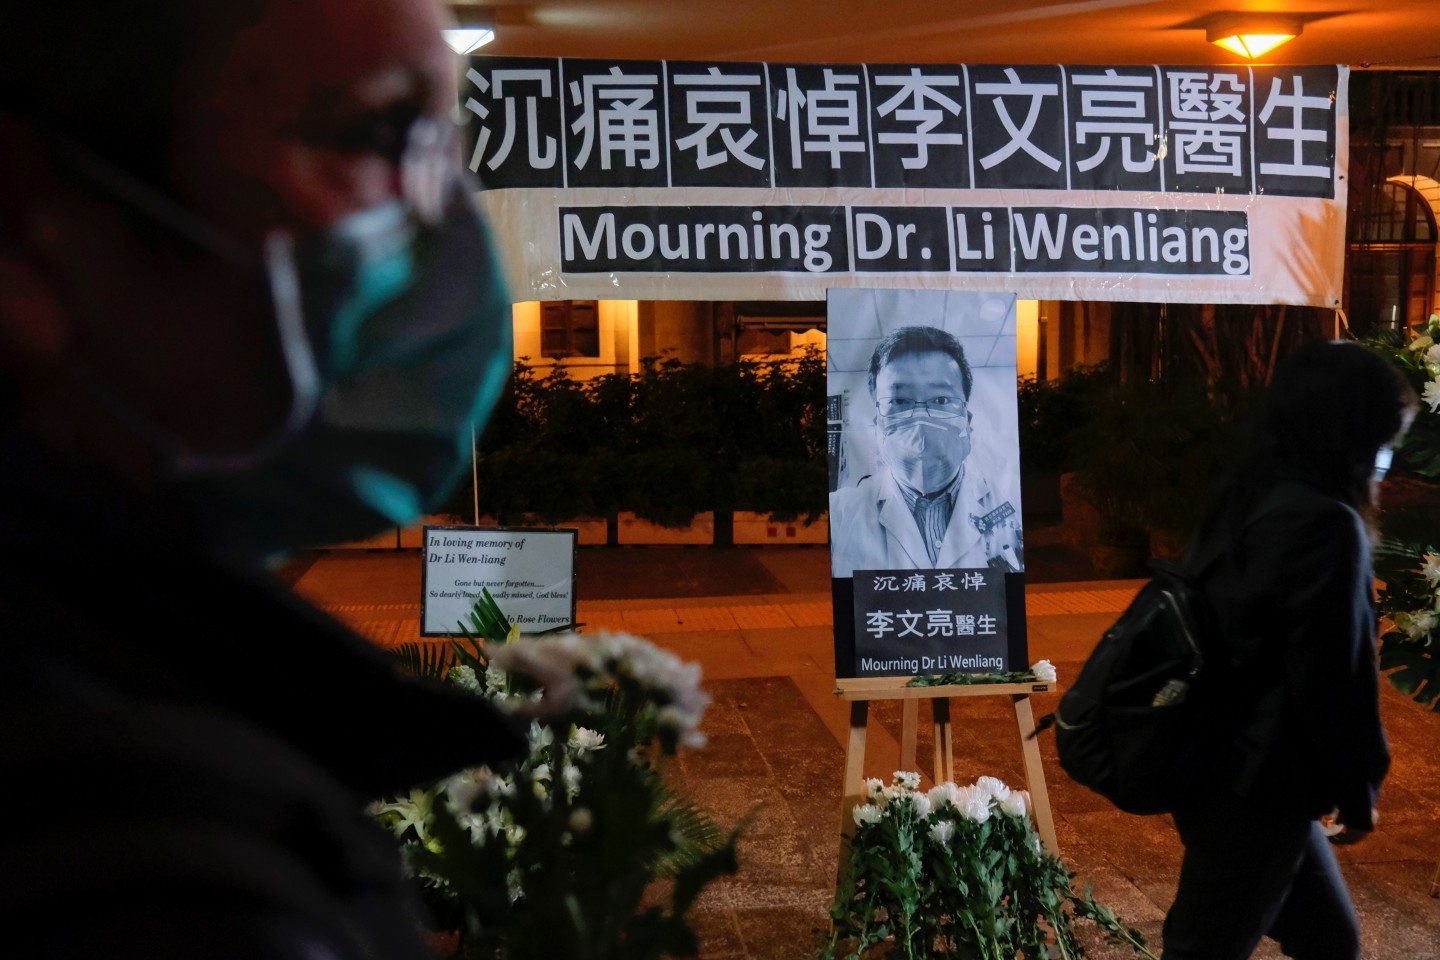 In this photo taken on 7 February 2020, people wearing masks attend a vigil in Hong Kong for late Dr Li Wenliang, an ophthalmologist who died of Covid-19 at a hospital in Wuhan. (Tyrone Siu/Reuters)